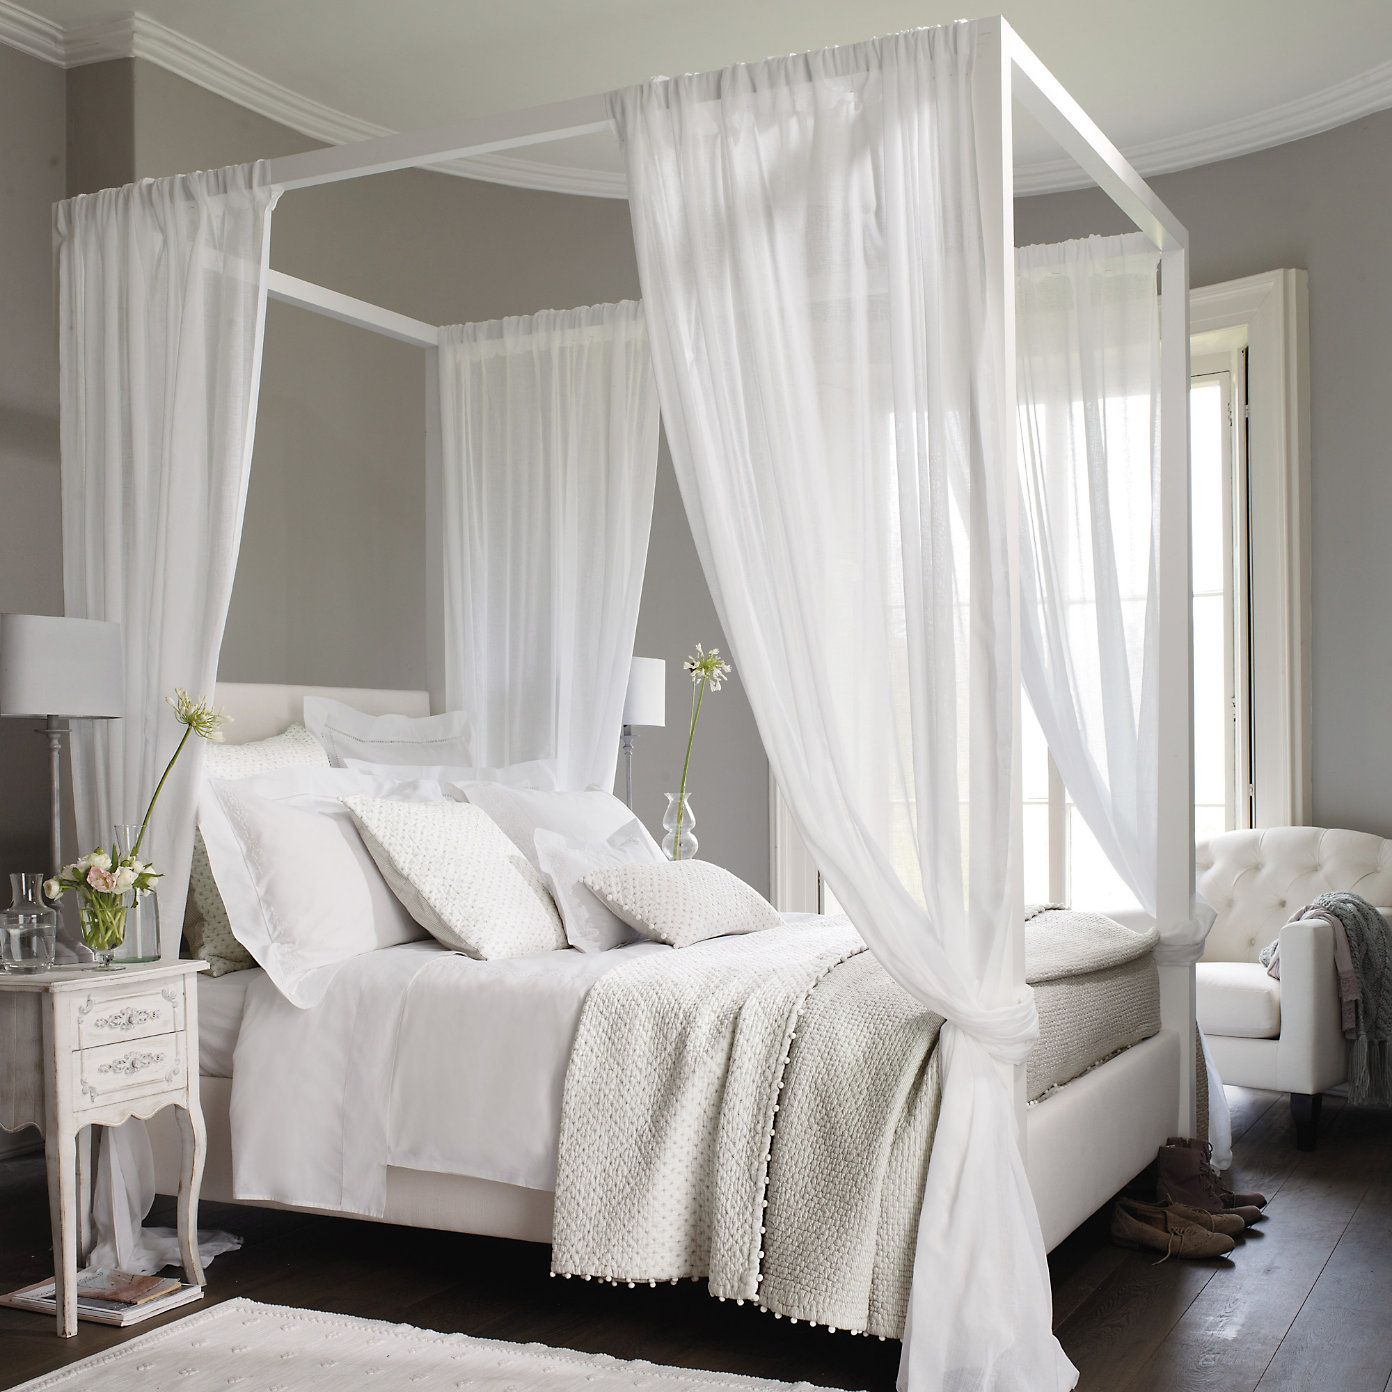 33 Canopy Beds And Canopy Ideas For Your Bedroom Canopy